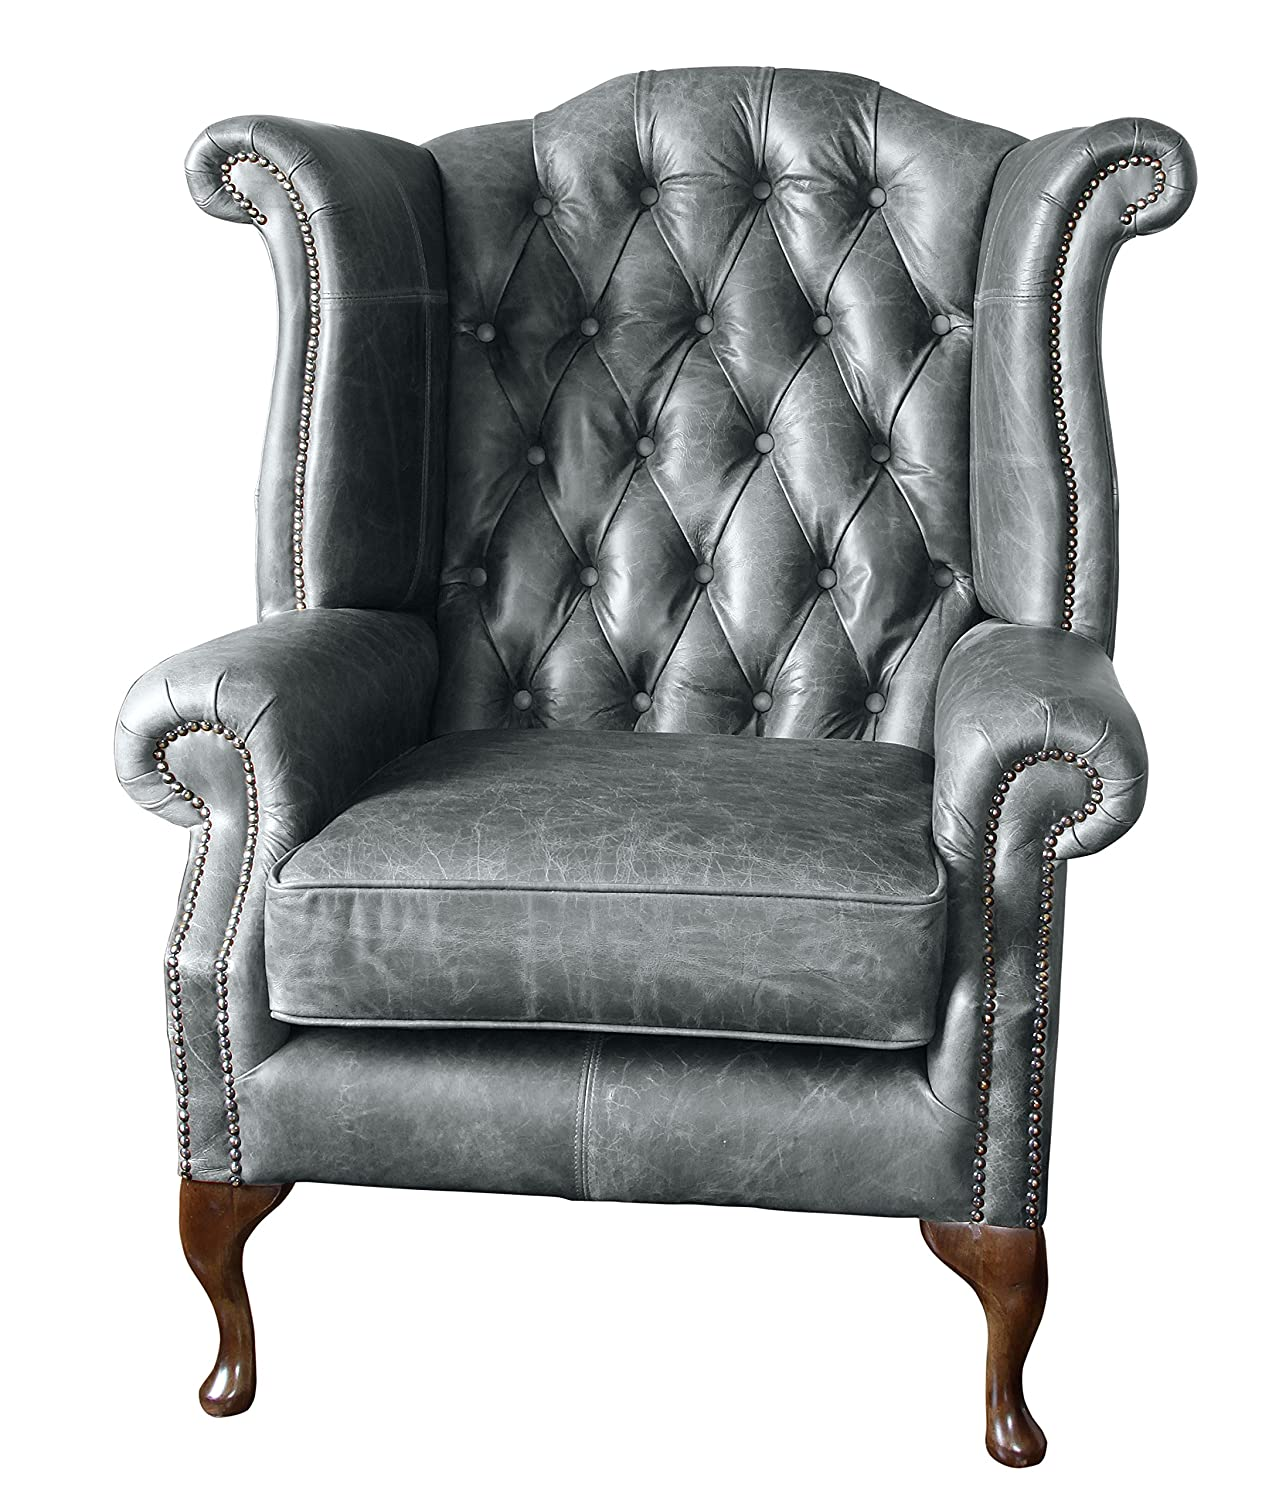 Peachy Sofa Manufacturing Handmade Chesterfield Queen Anne High Back Wing Chair In Vintage Grey Leather Home Interior And Landscaping Mentranervesignezvosmurscom